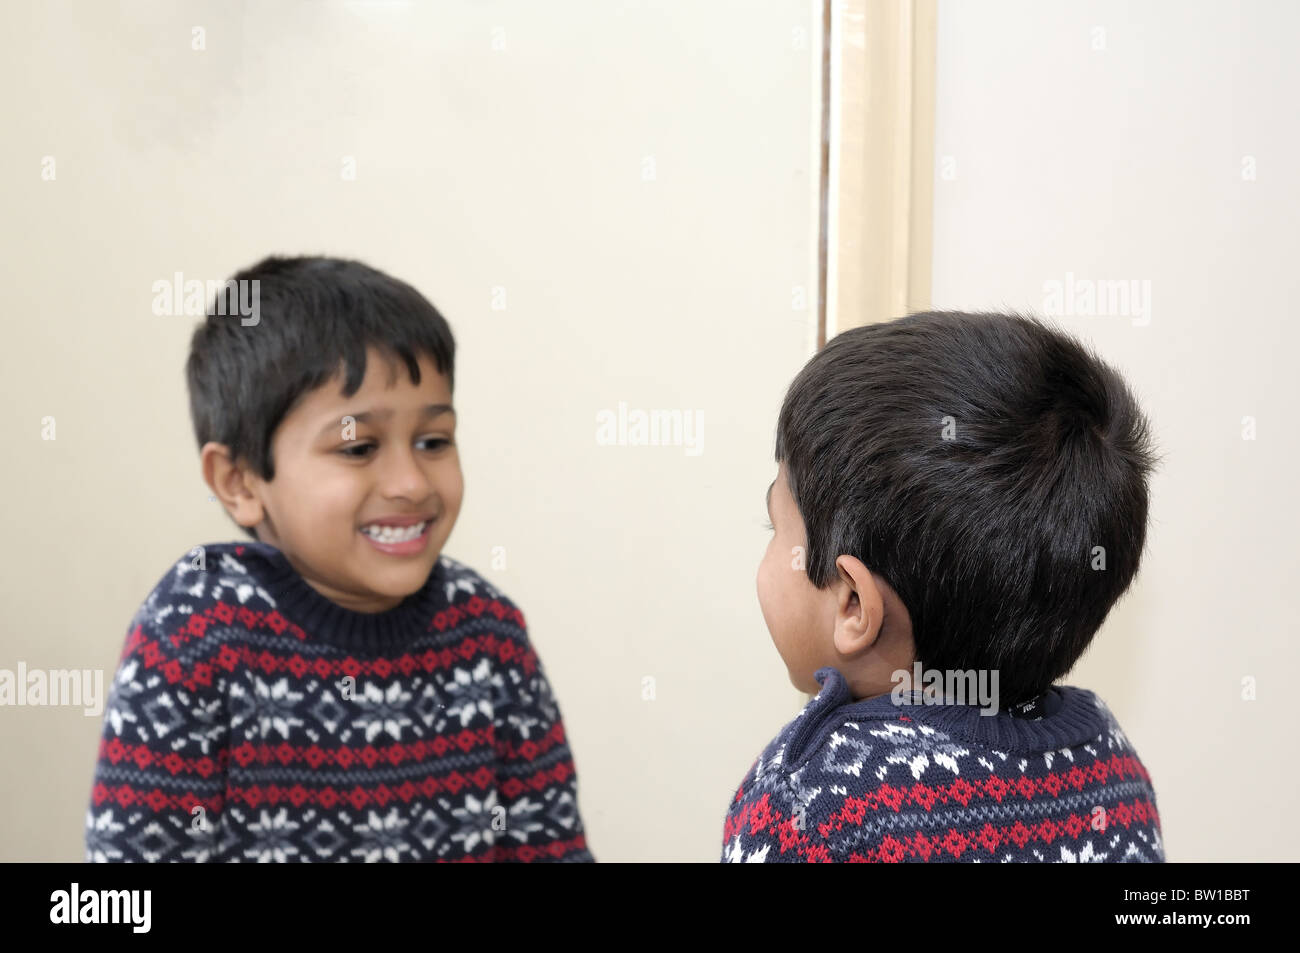 Cute toddler looking into mirror, laughing Stock Photo